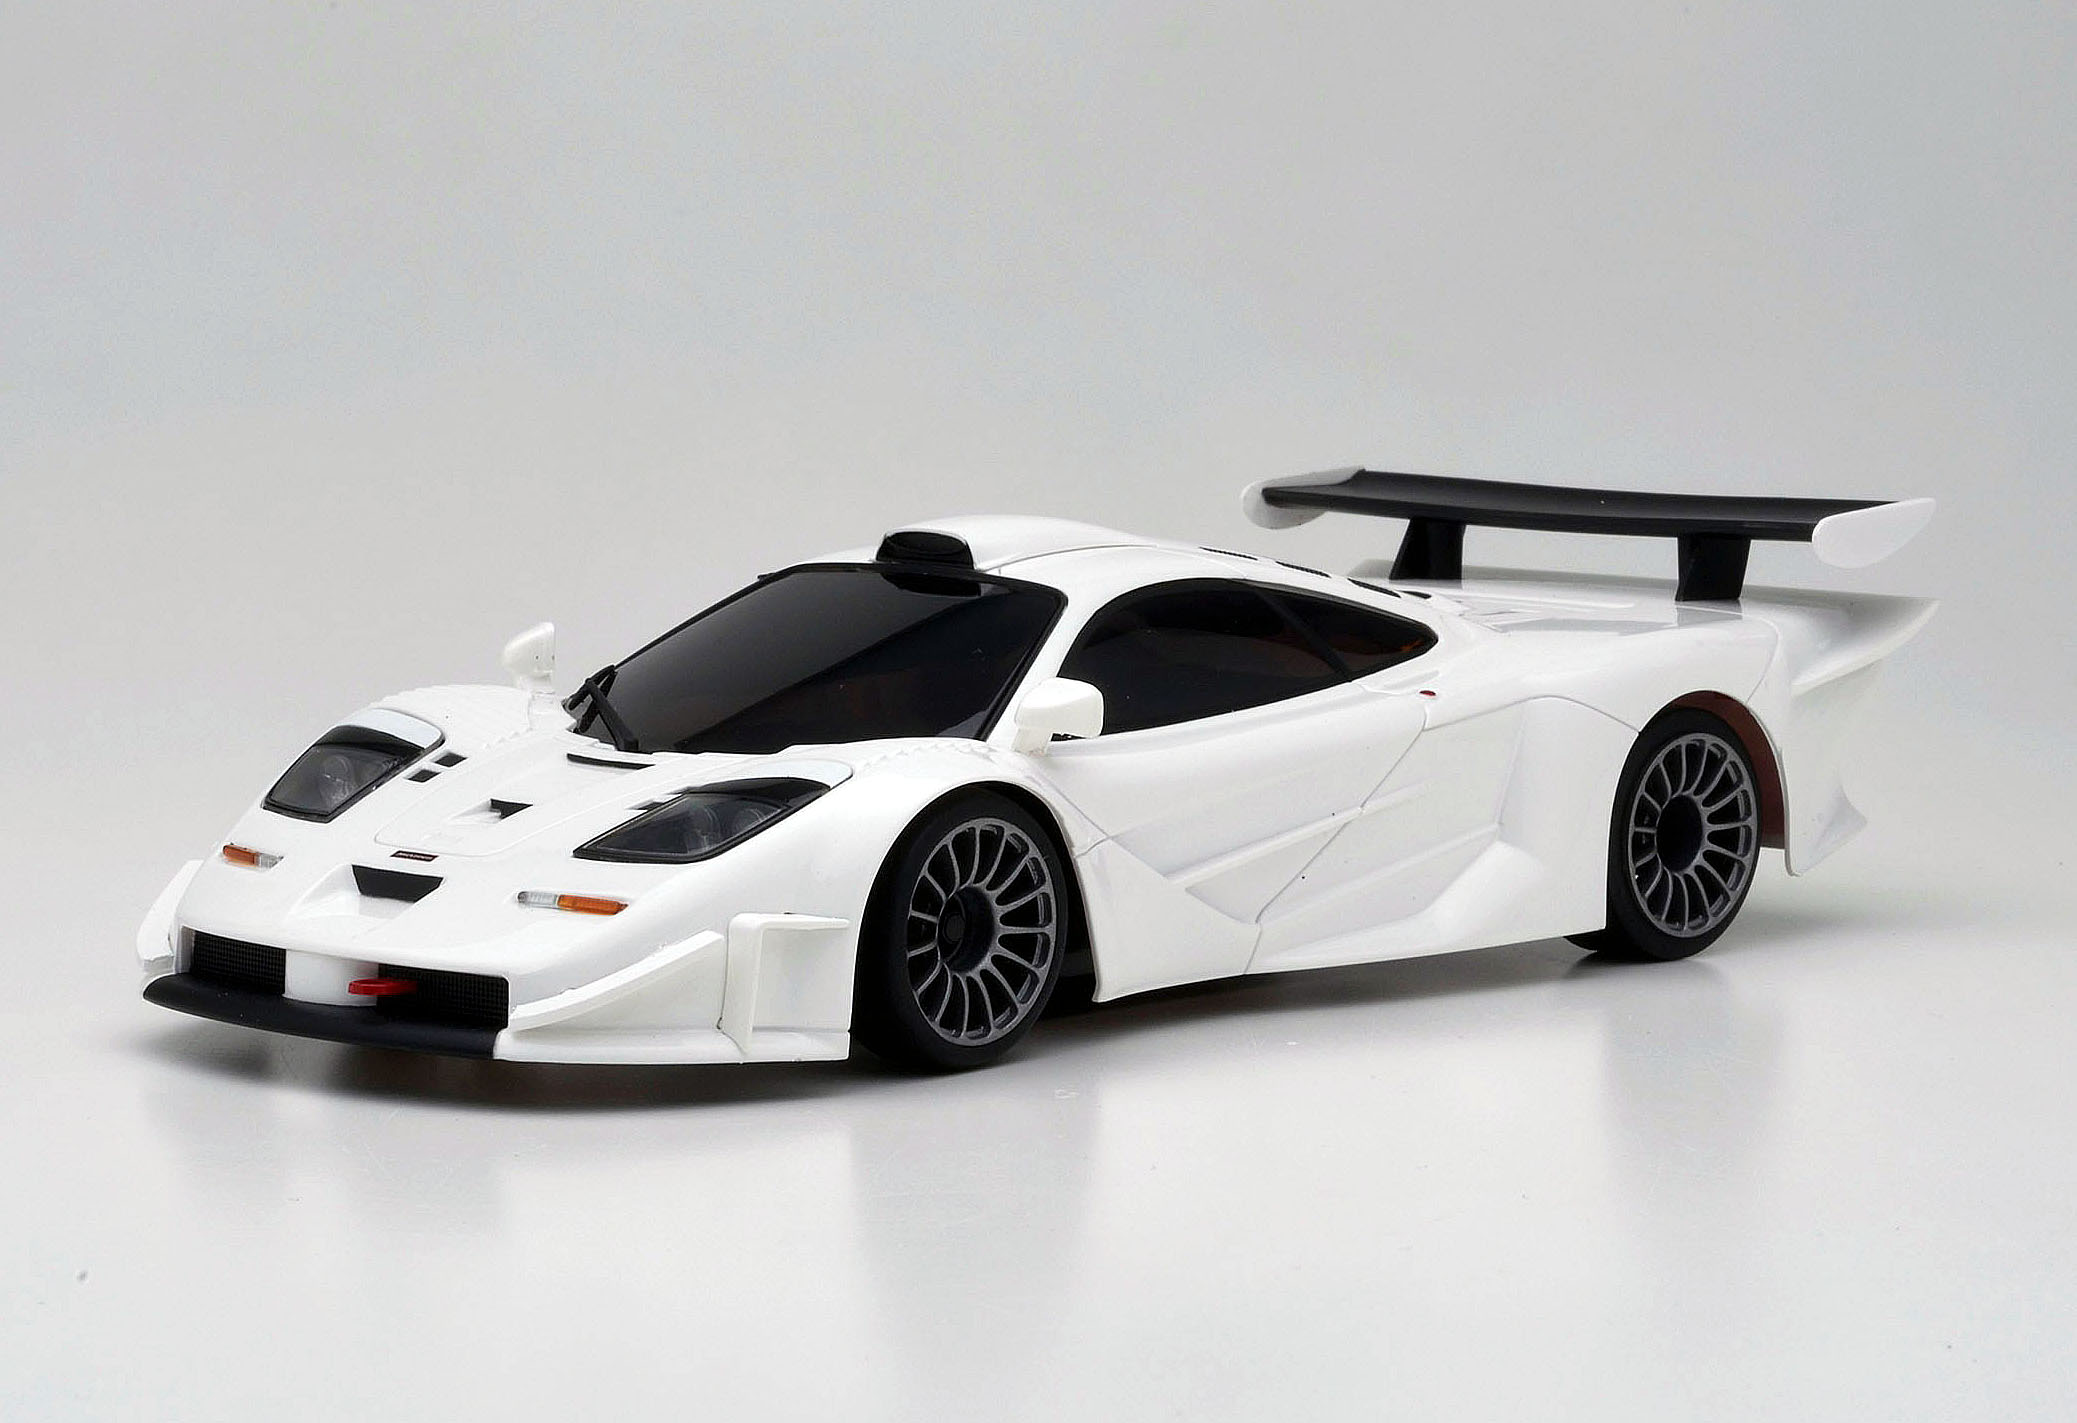 kyosho mini z karosserie autoscale mclaren f1 gtr. Black Bedroom Furniture Sets. Home Design Ideas